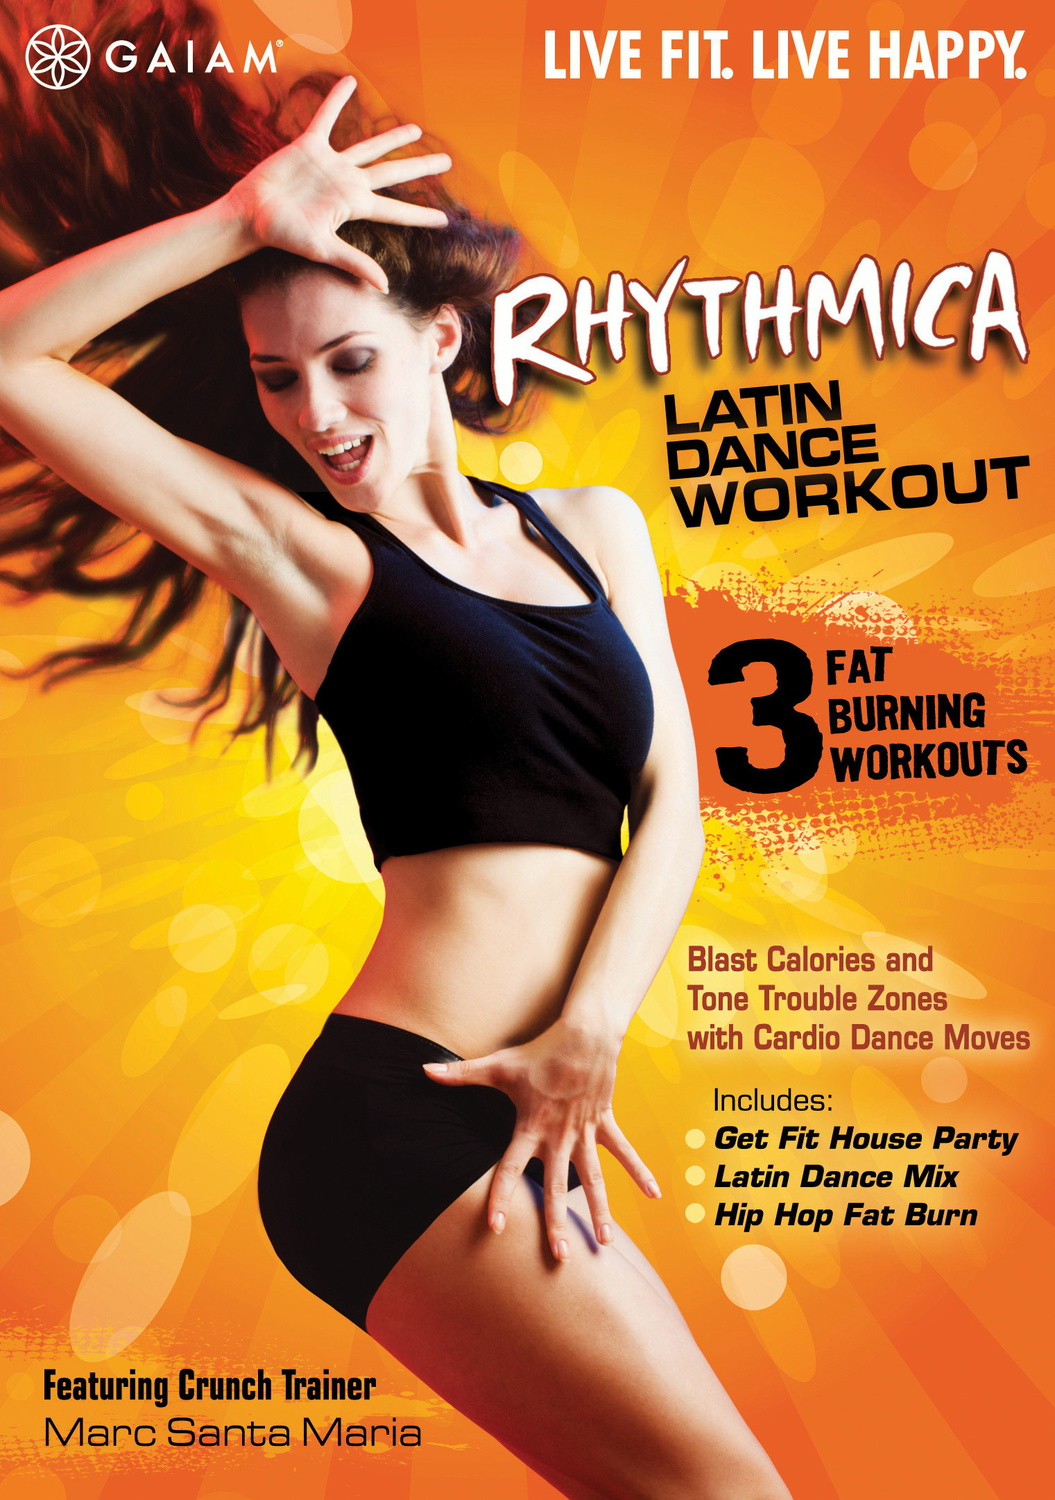 Gaiam: Rhythmica - Latin Dance Workout